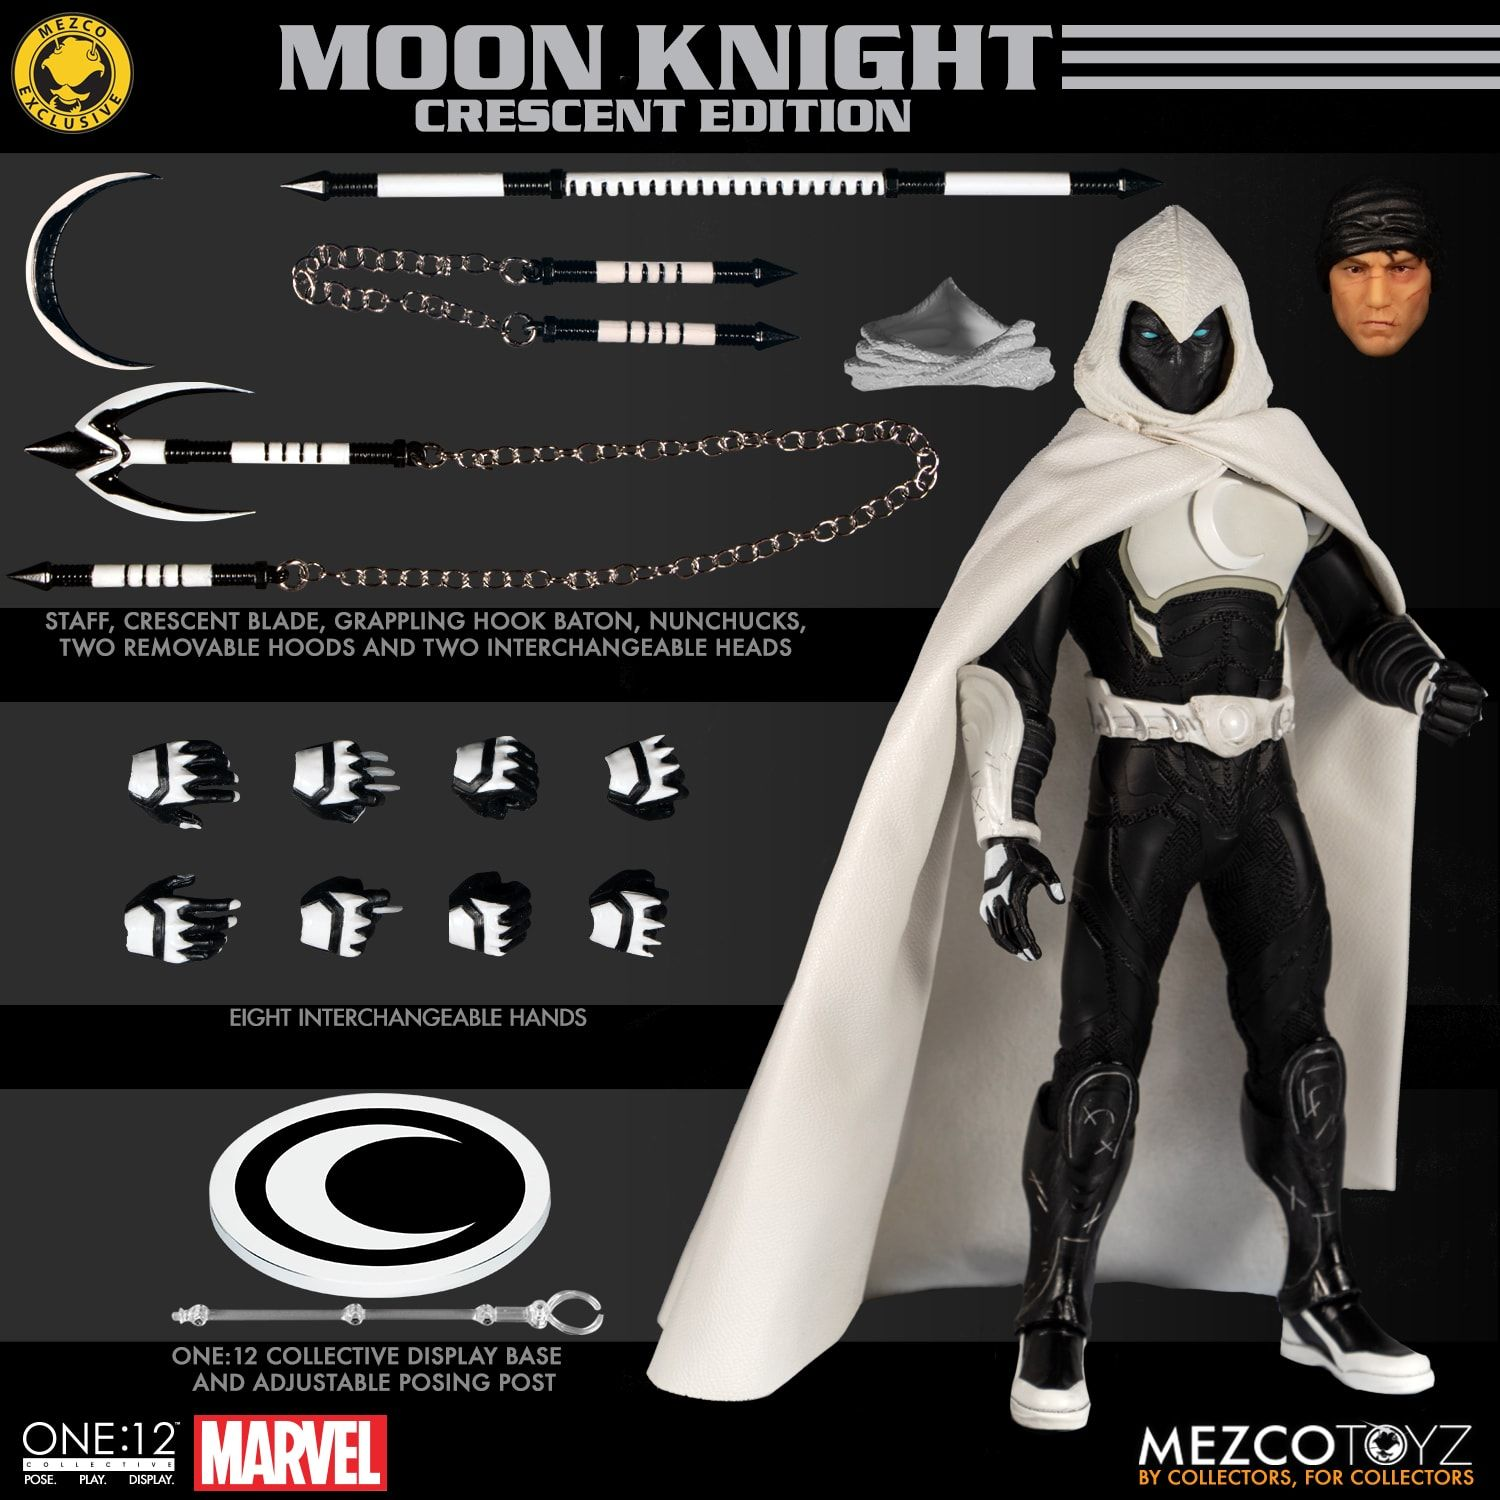 Mezco One:12 Moon Knight SDCC Exclusive Action Figure